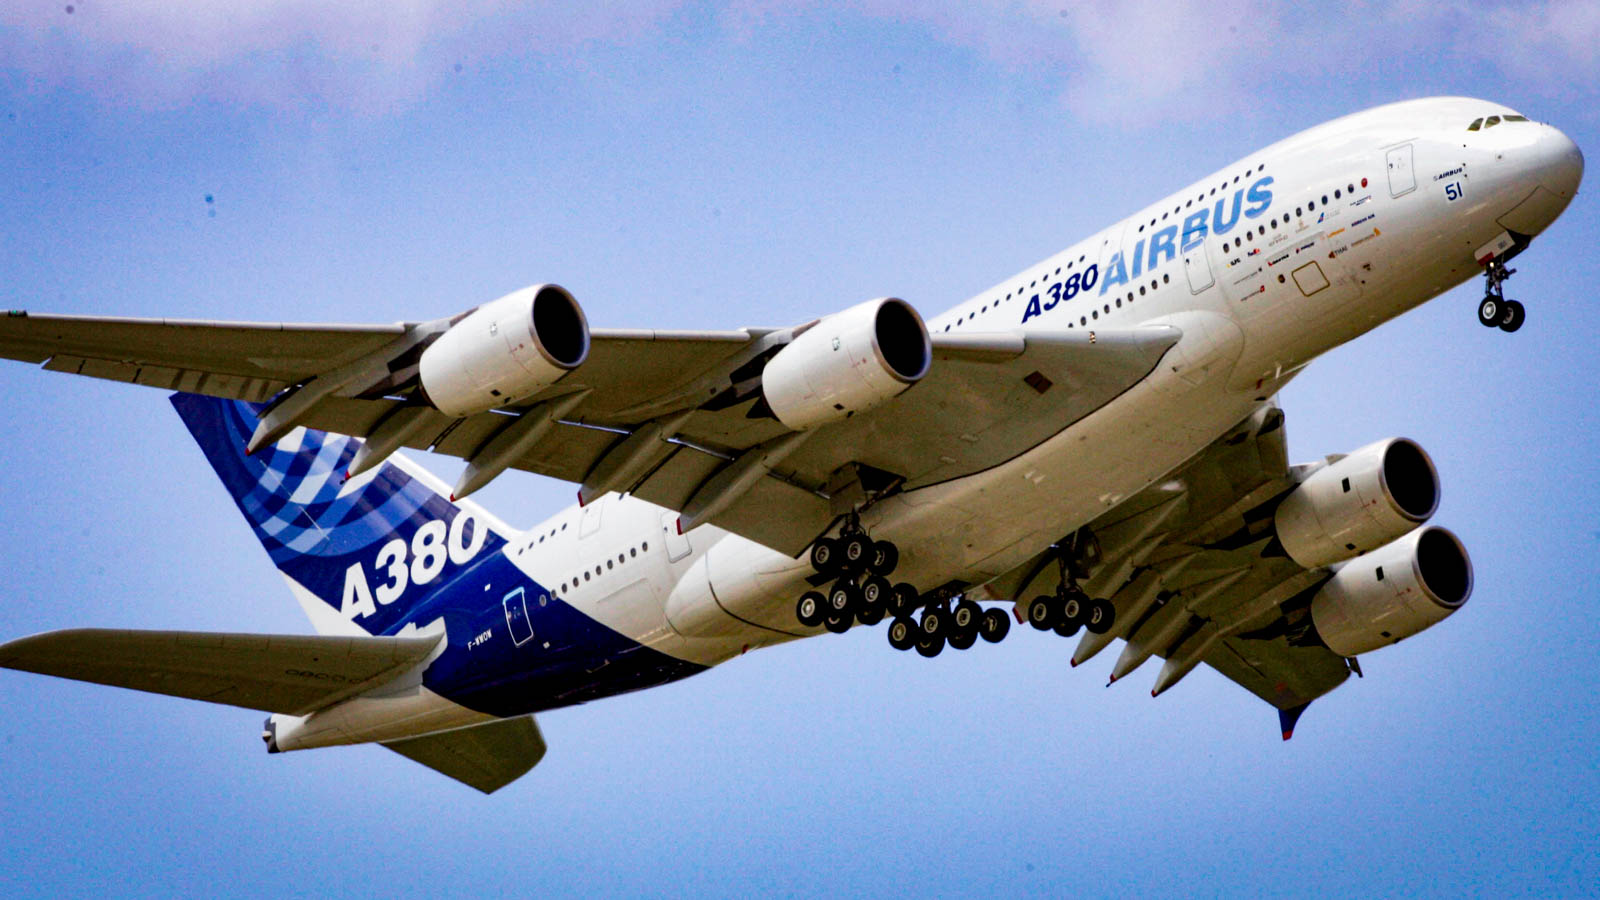 How the A380 superjumbo dream fell apart | CNN Travel